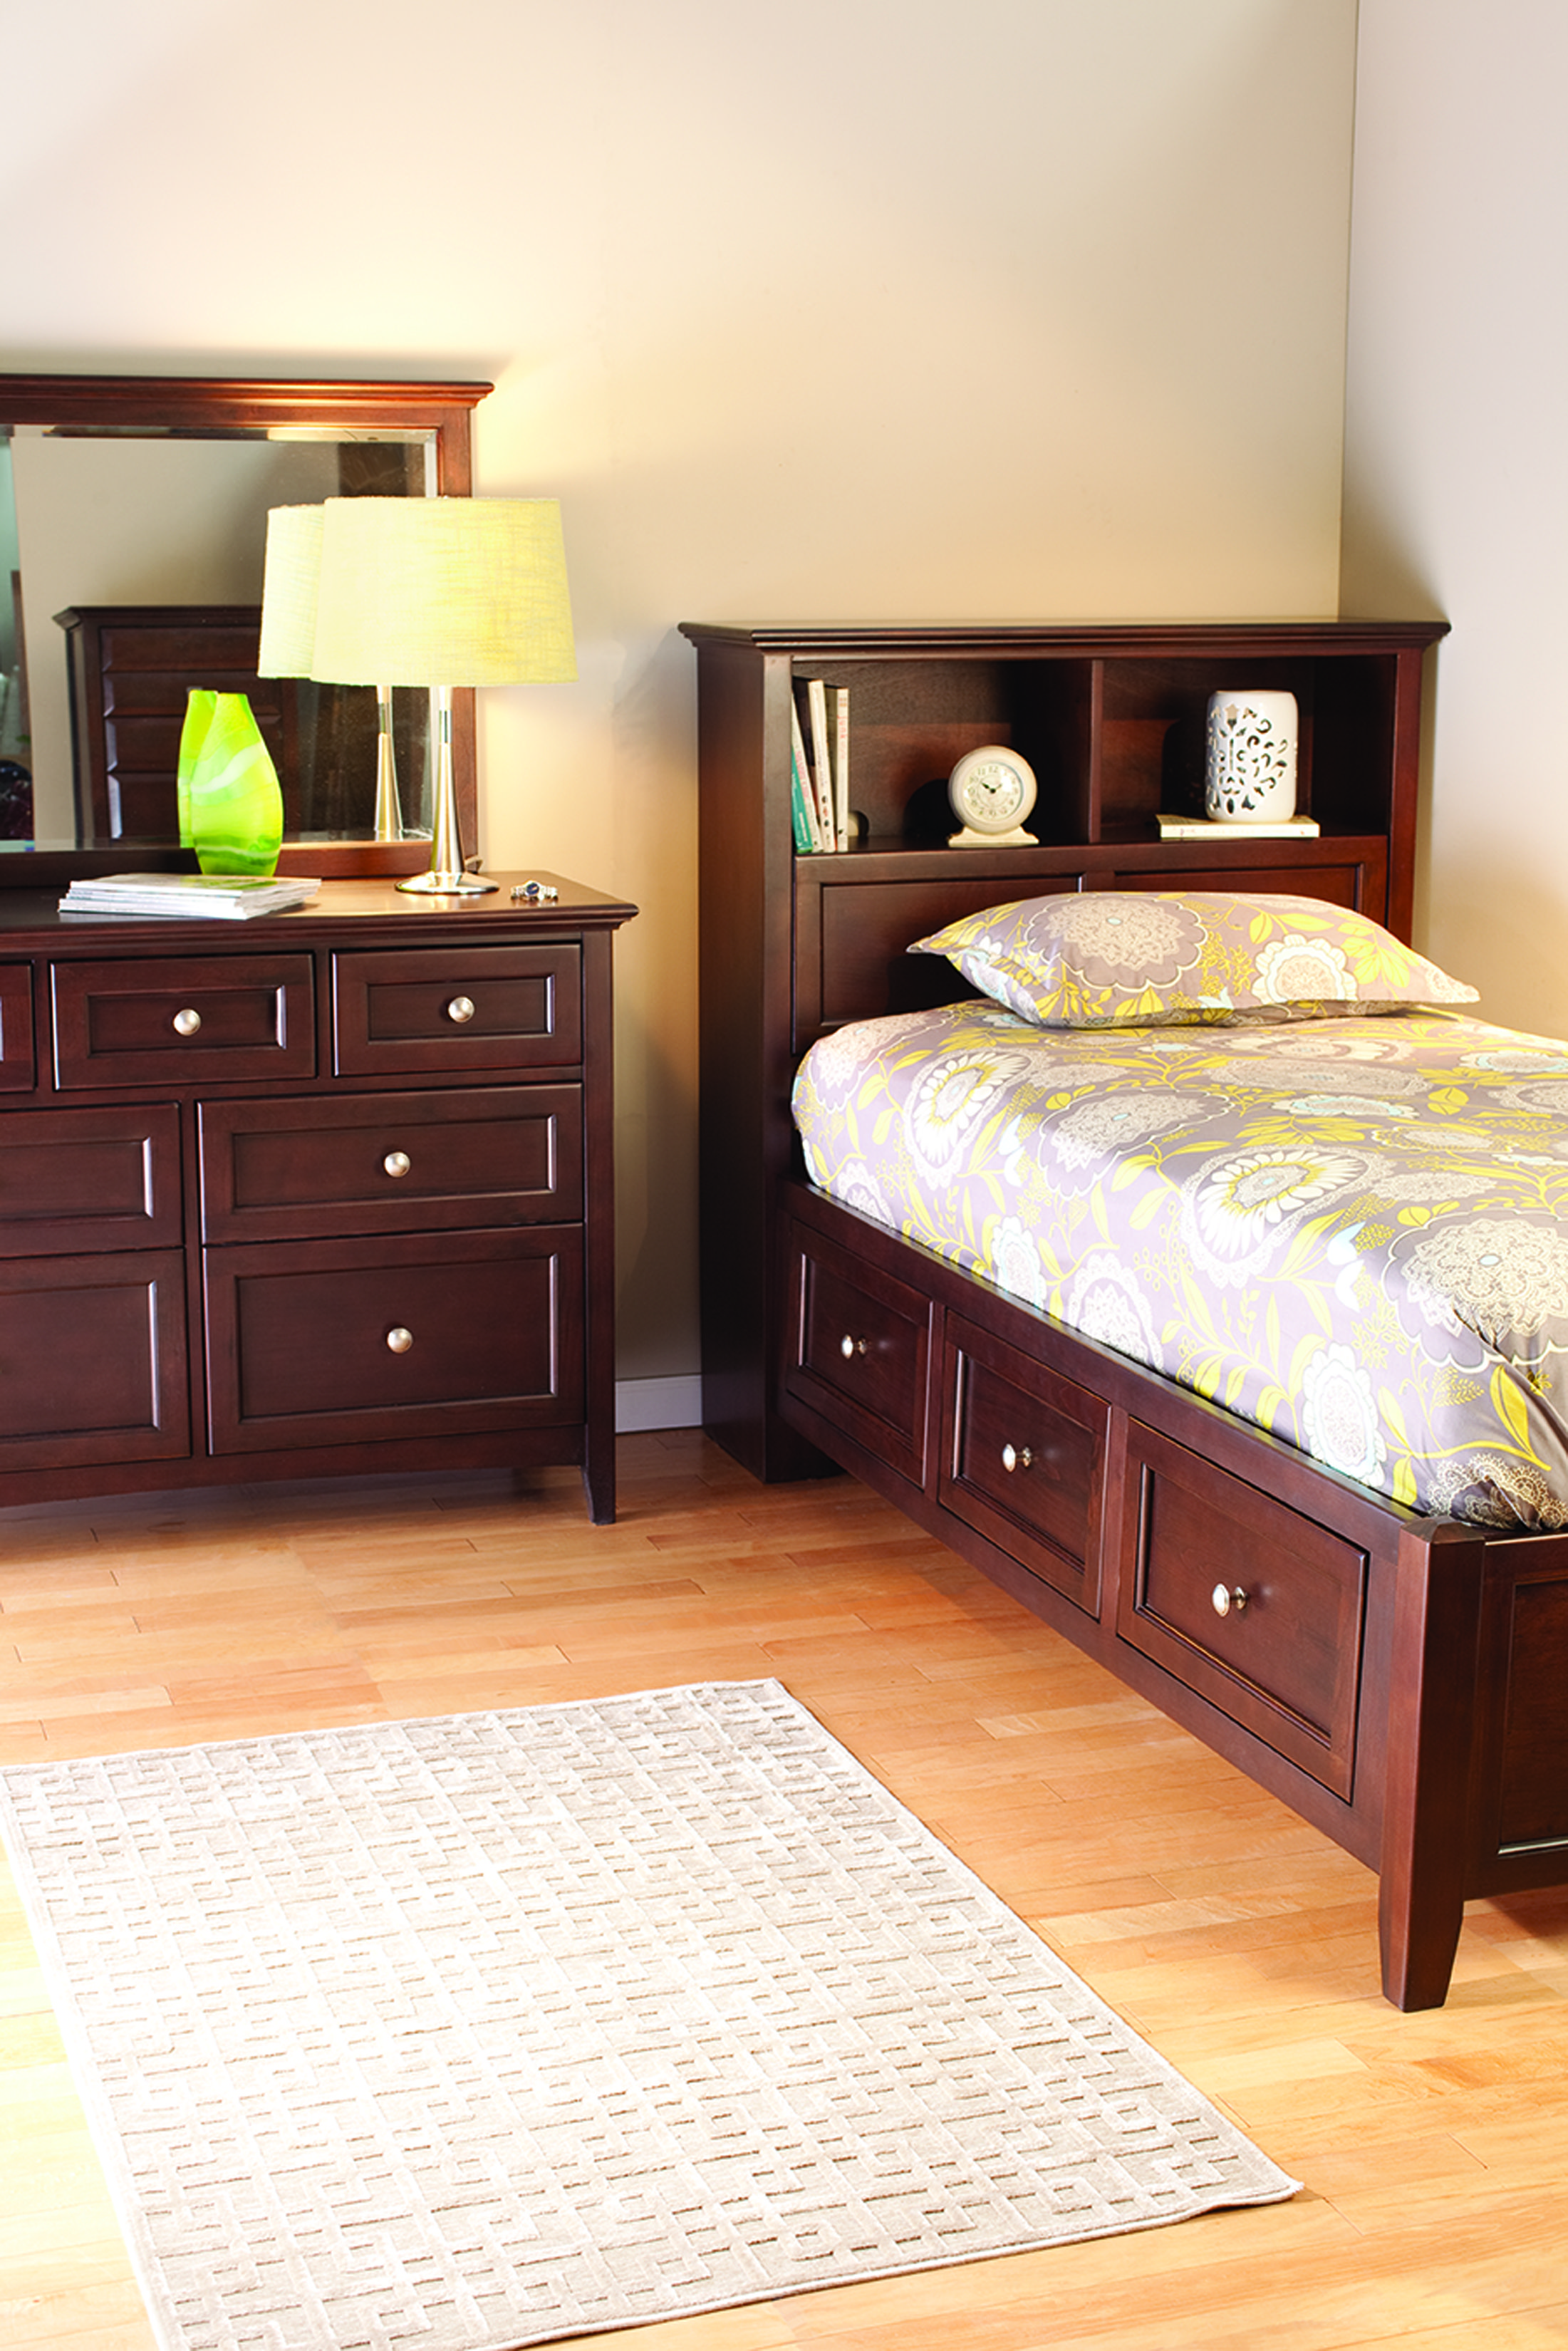 Finished Storage Bed Features include hidden storage